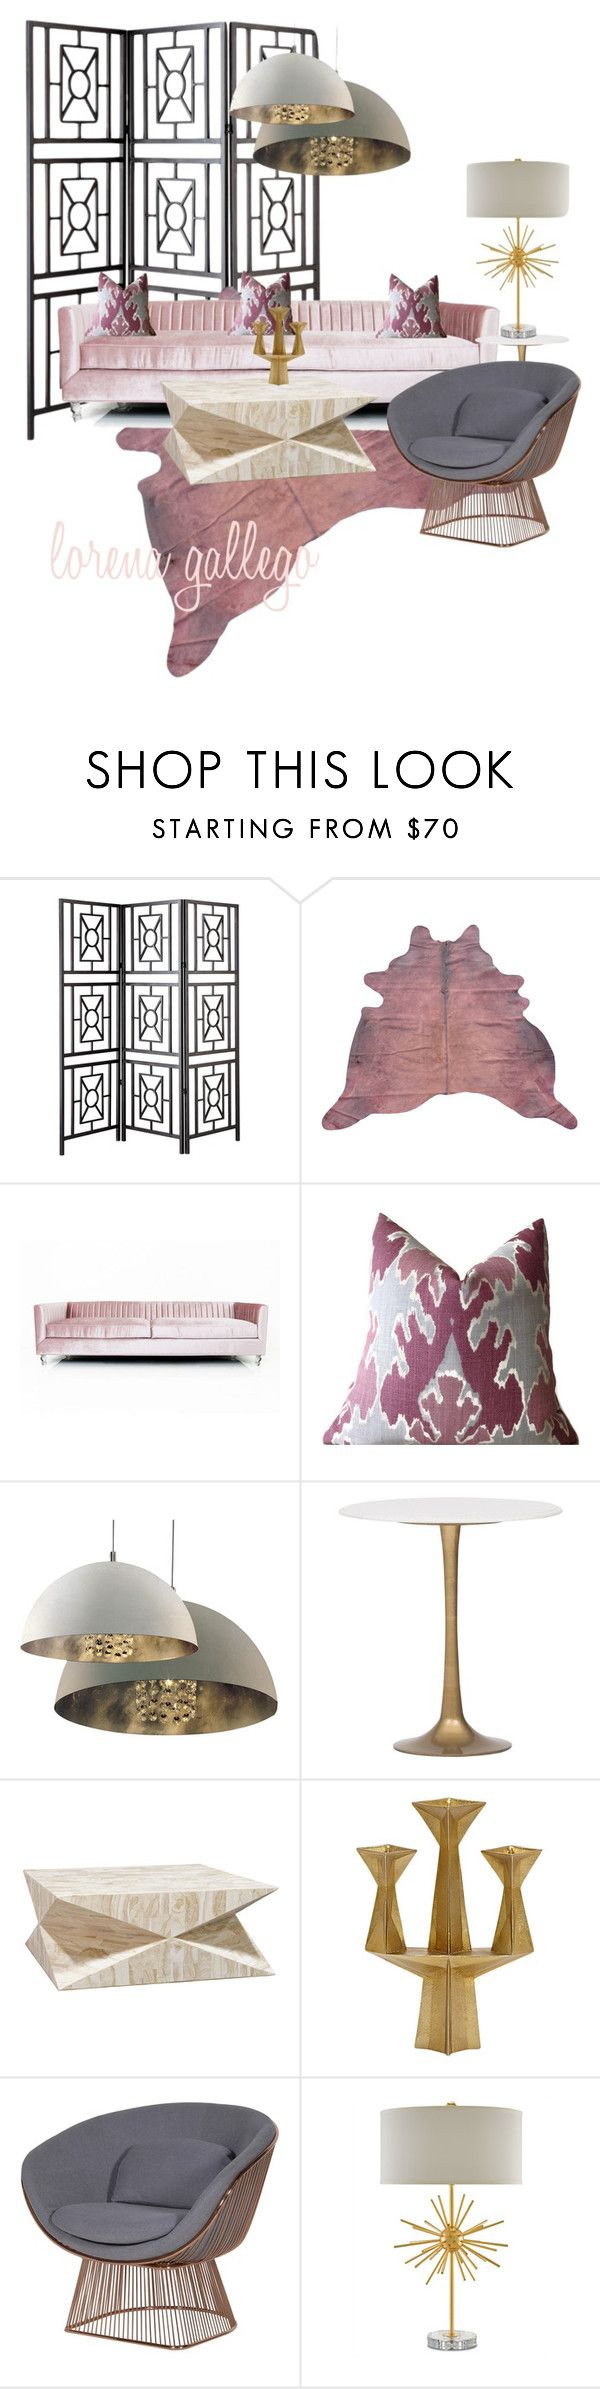 Home decor collage from january 2017 featuring currey company - Rosa By Lorena Gallego On Polyvore Featuring Interior Interiors Interior Design A Home Decor Collage From January